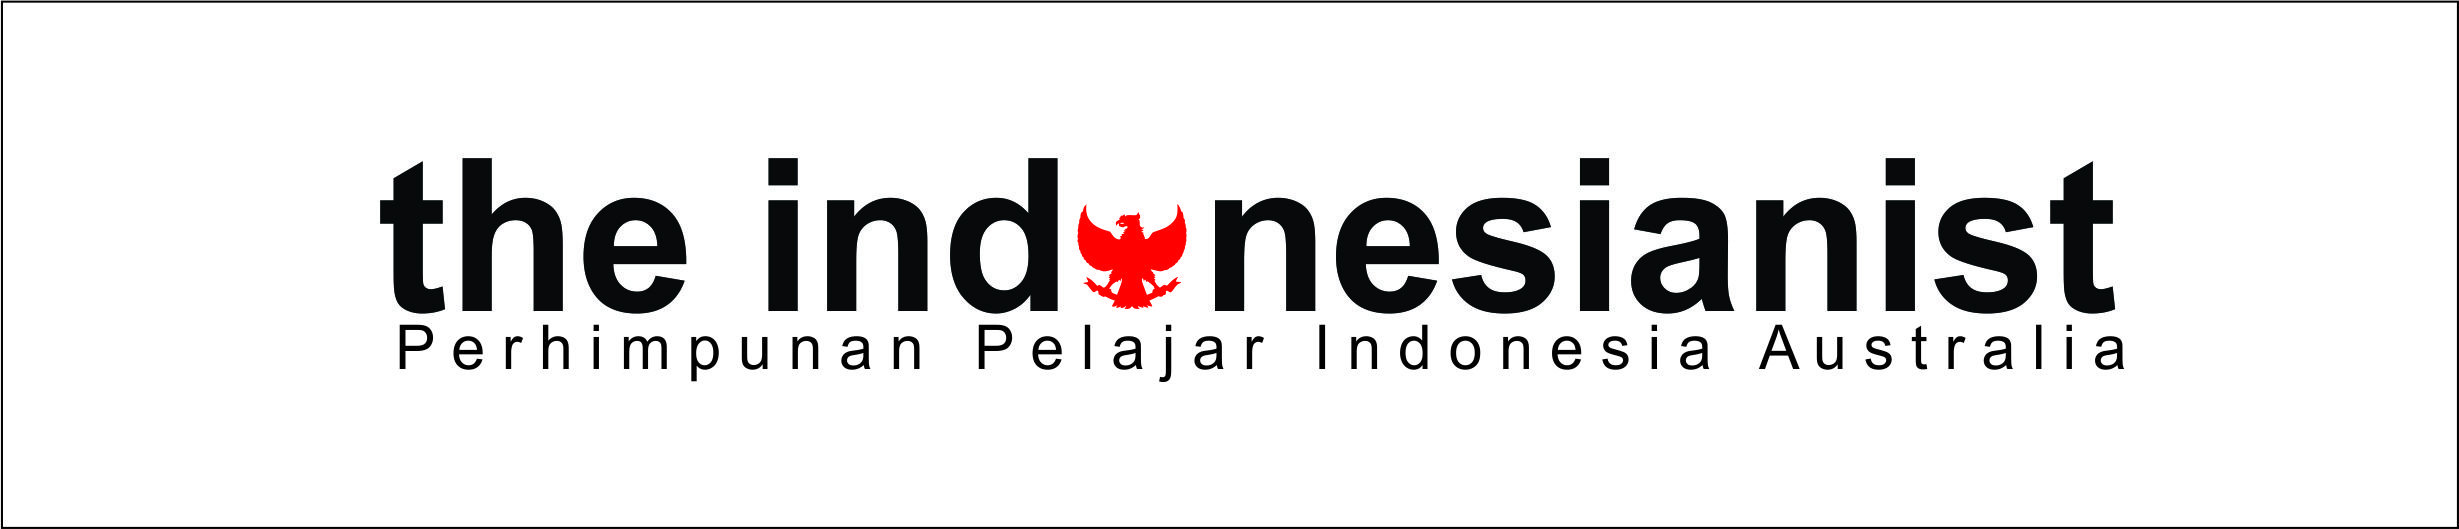 the indonesianist